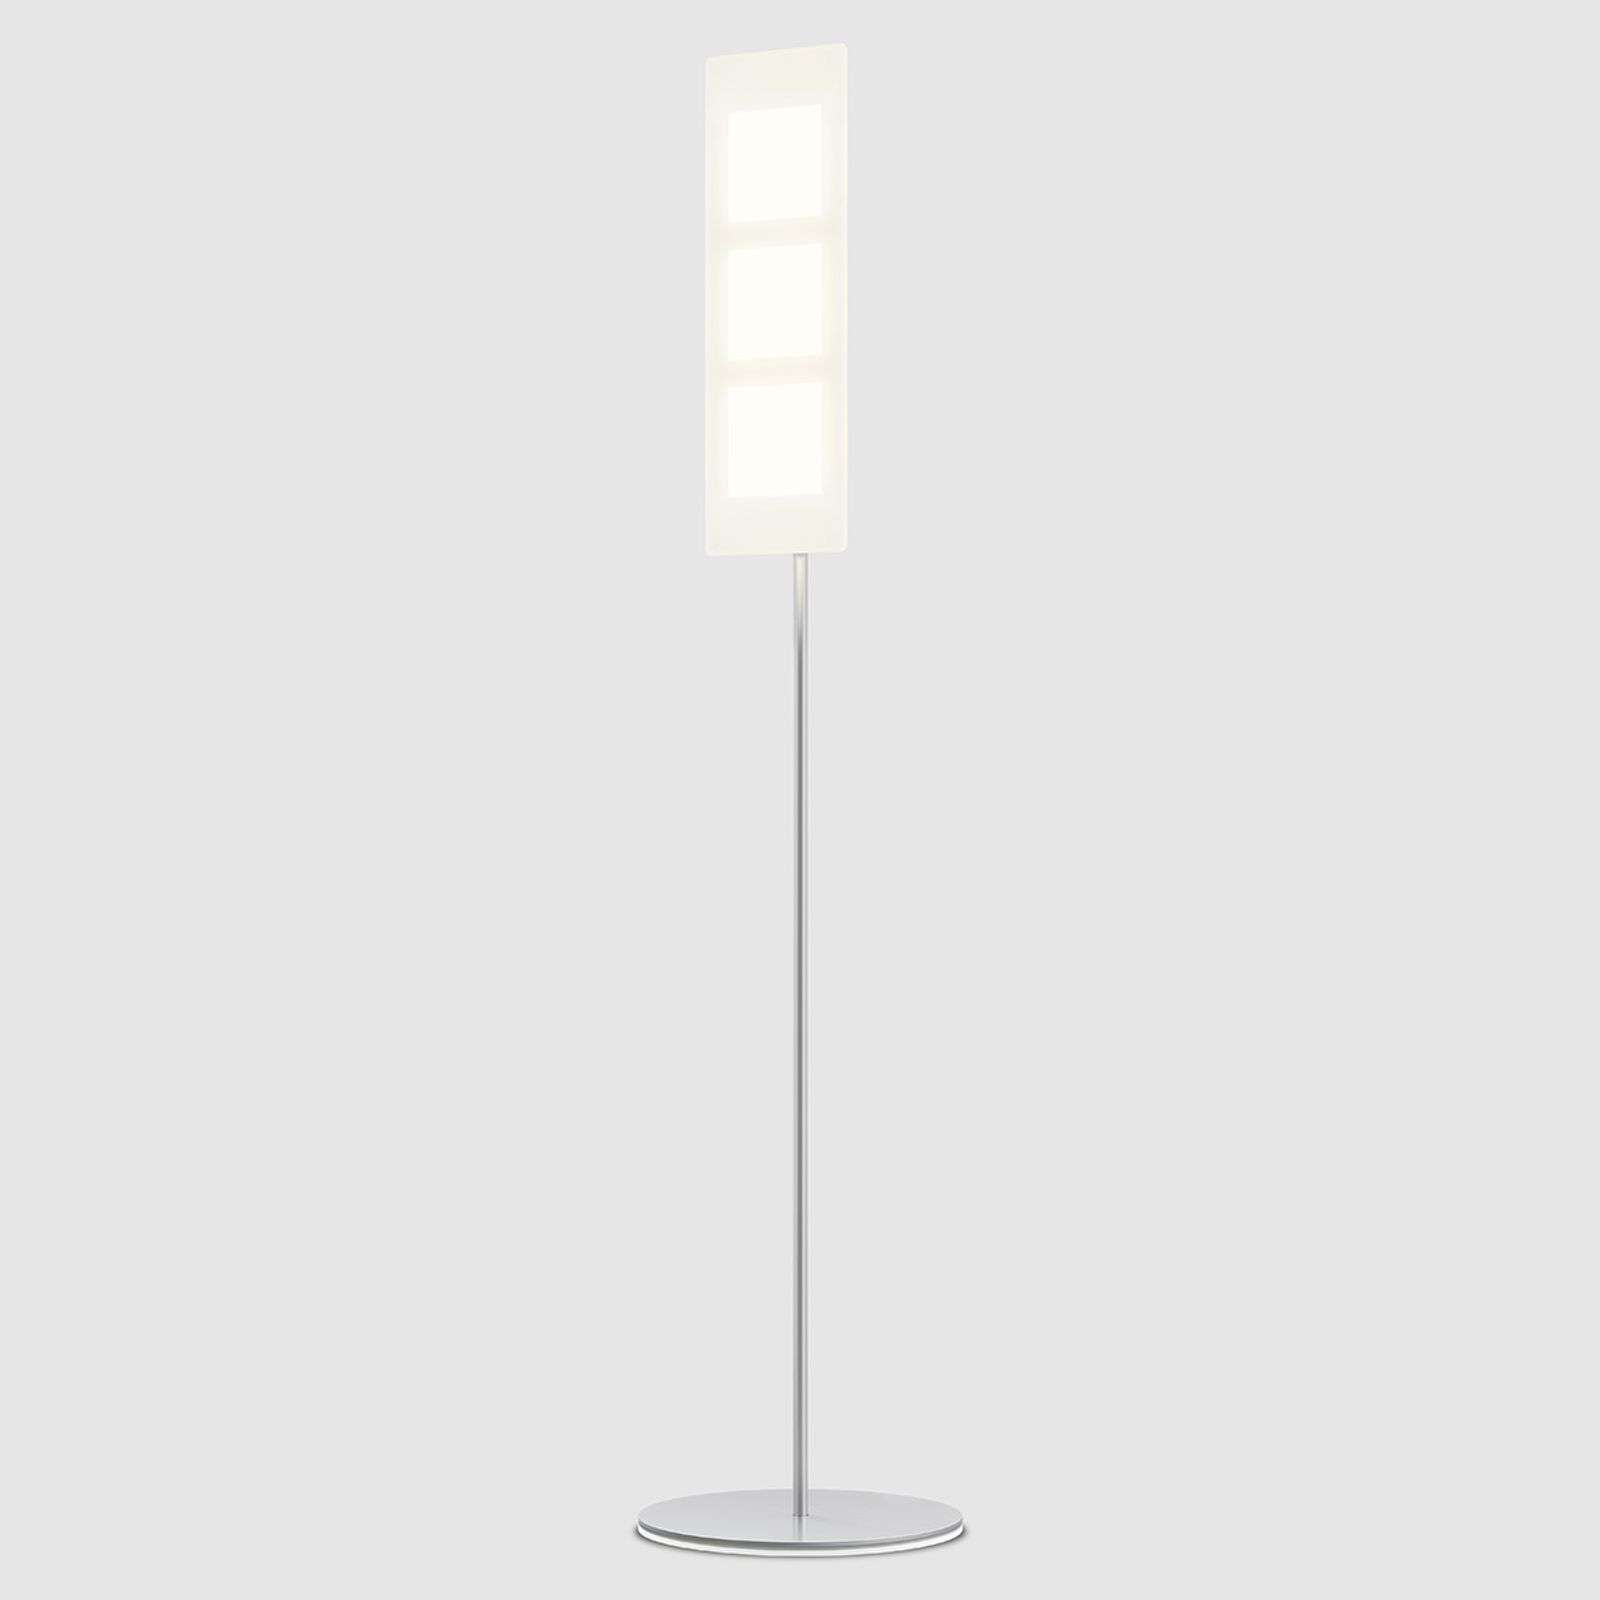 OMLED One f3 - lampadaire OLED en blanc